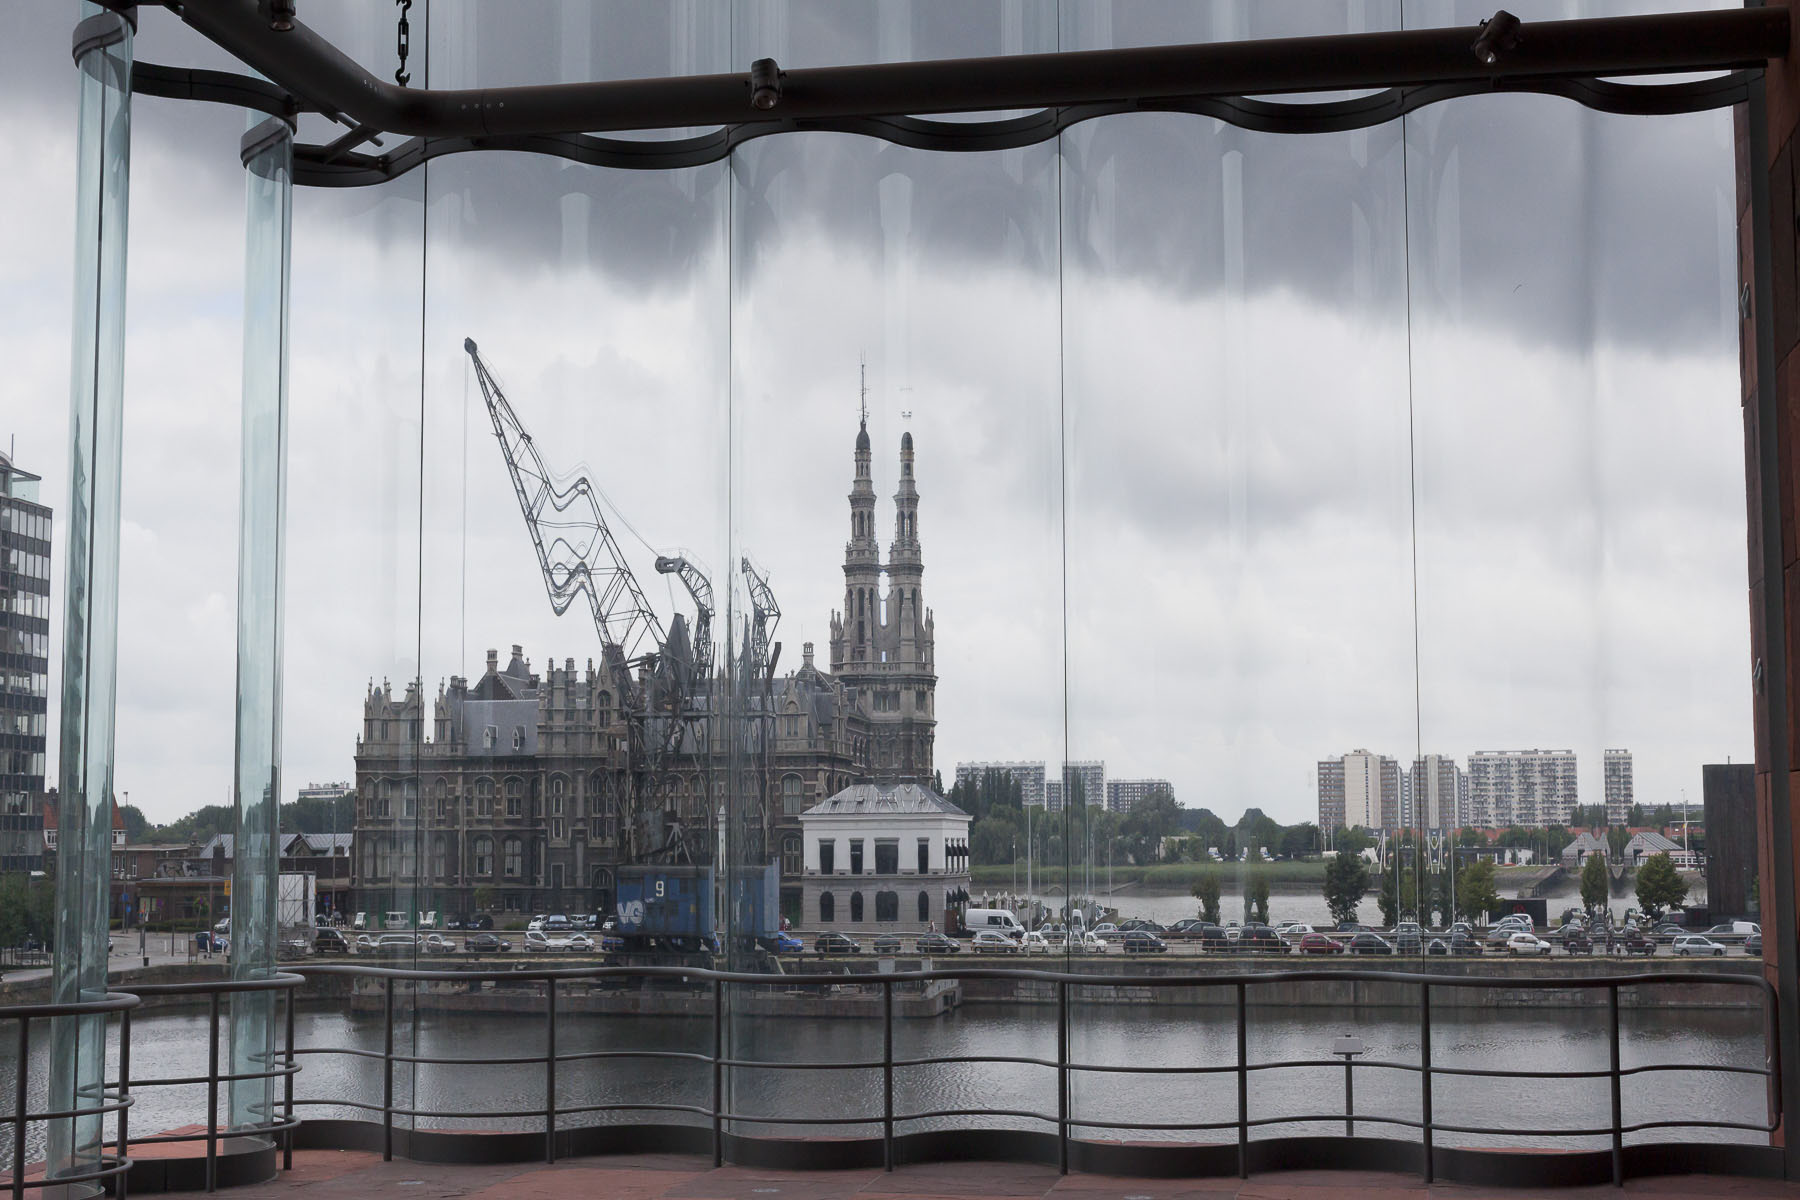 The Pilot House on the Bonaparte quay seen from the Old Antwerp museum in July 2010